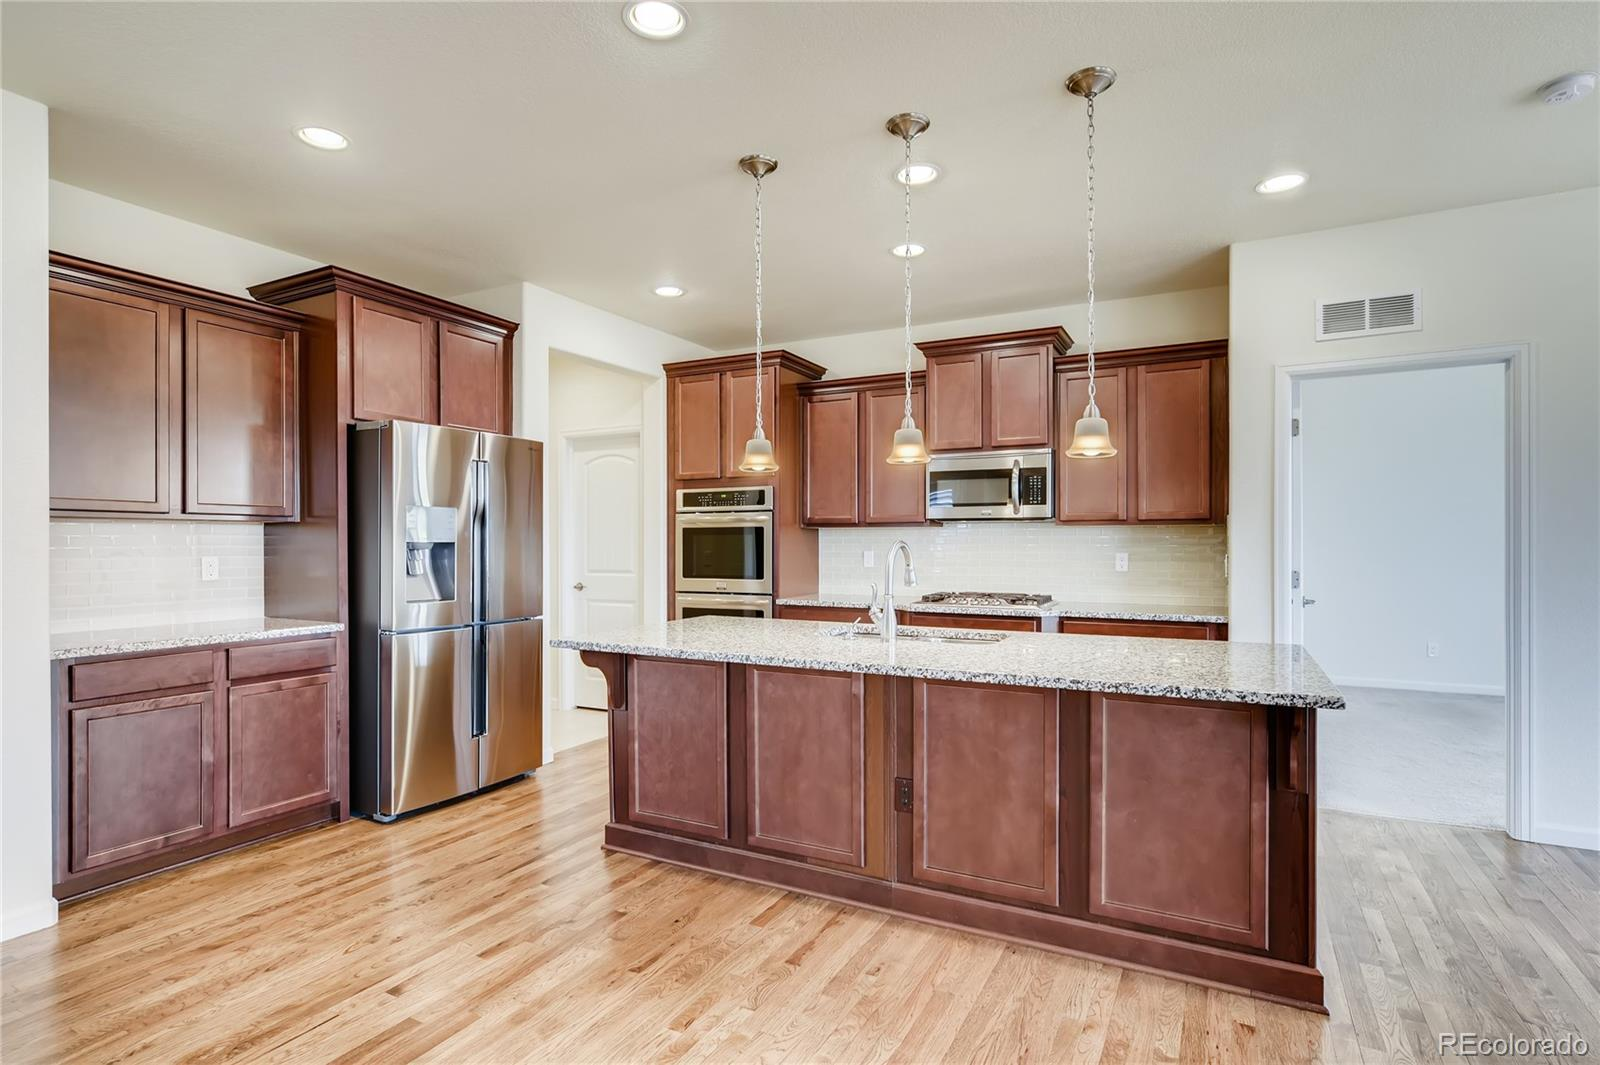 MLS# 5348867 - 9 - 1514 Promontory Bluff View, Colorado Springs, CO 80921